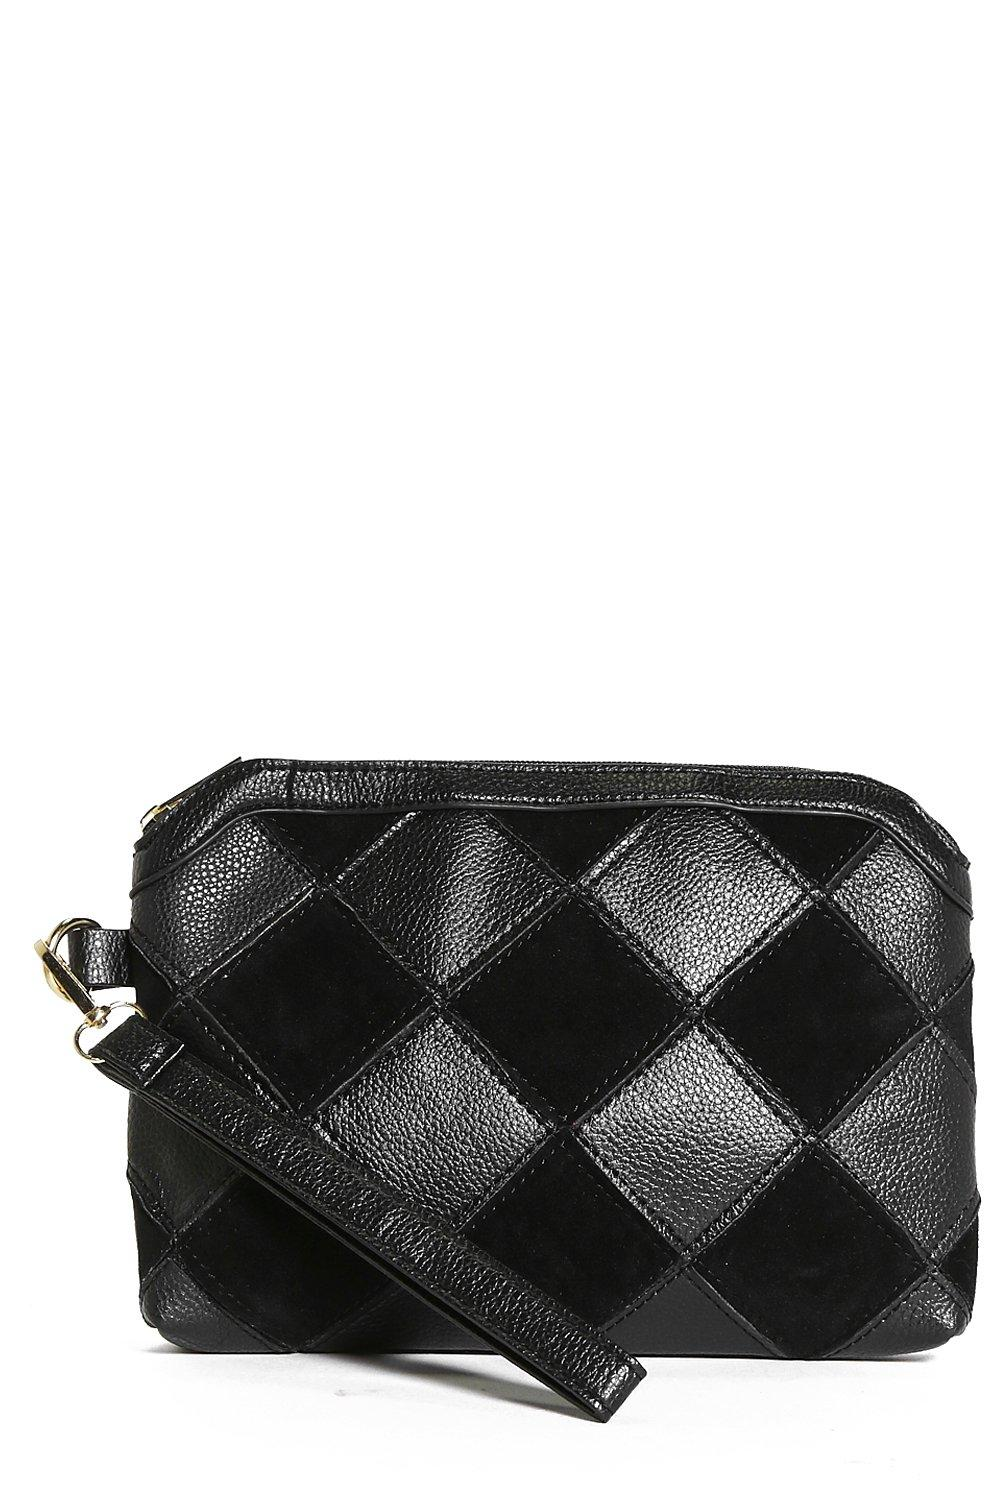 Alexis Patchwork Zip Top Clutch Bag